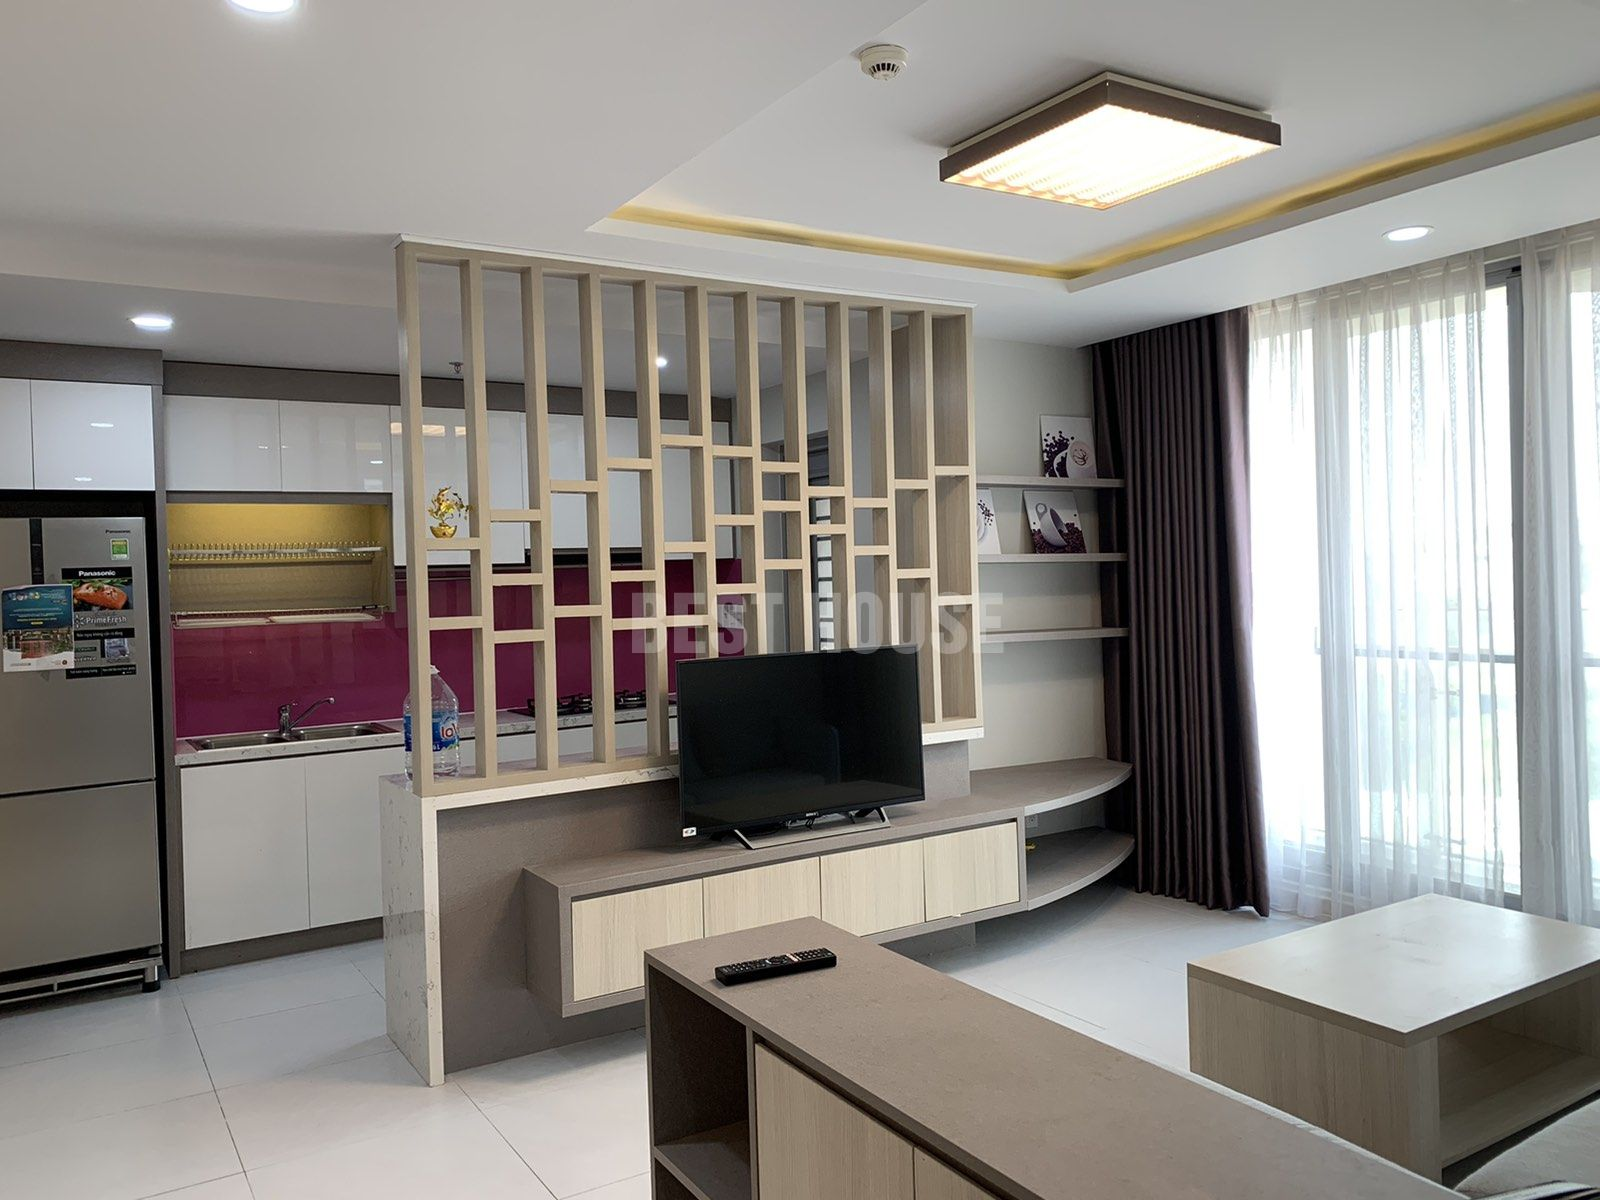 green-valley-apartment-for-rent-in-phu-my-hung-district-7-hcmc-8